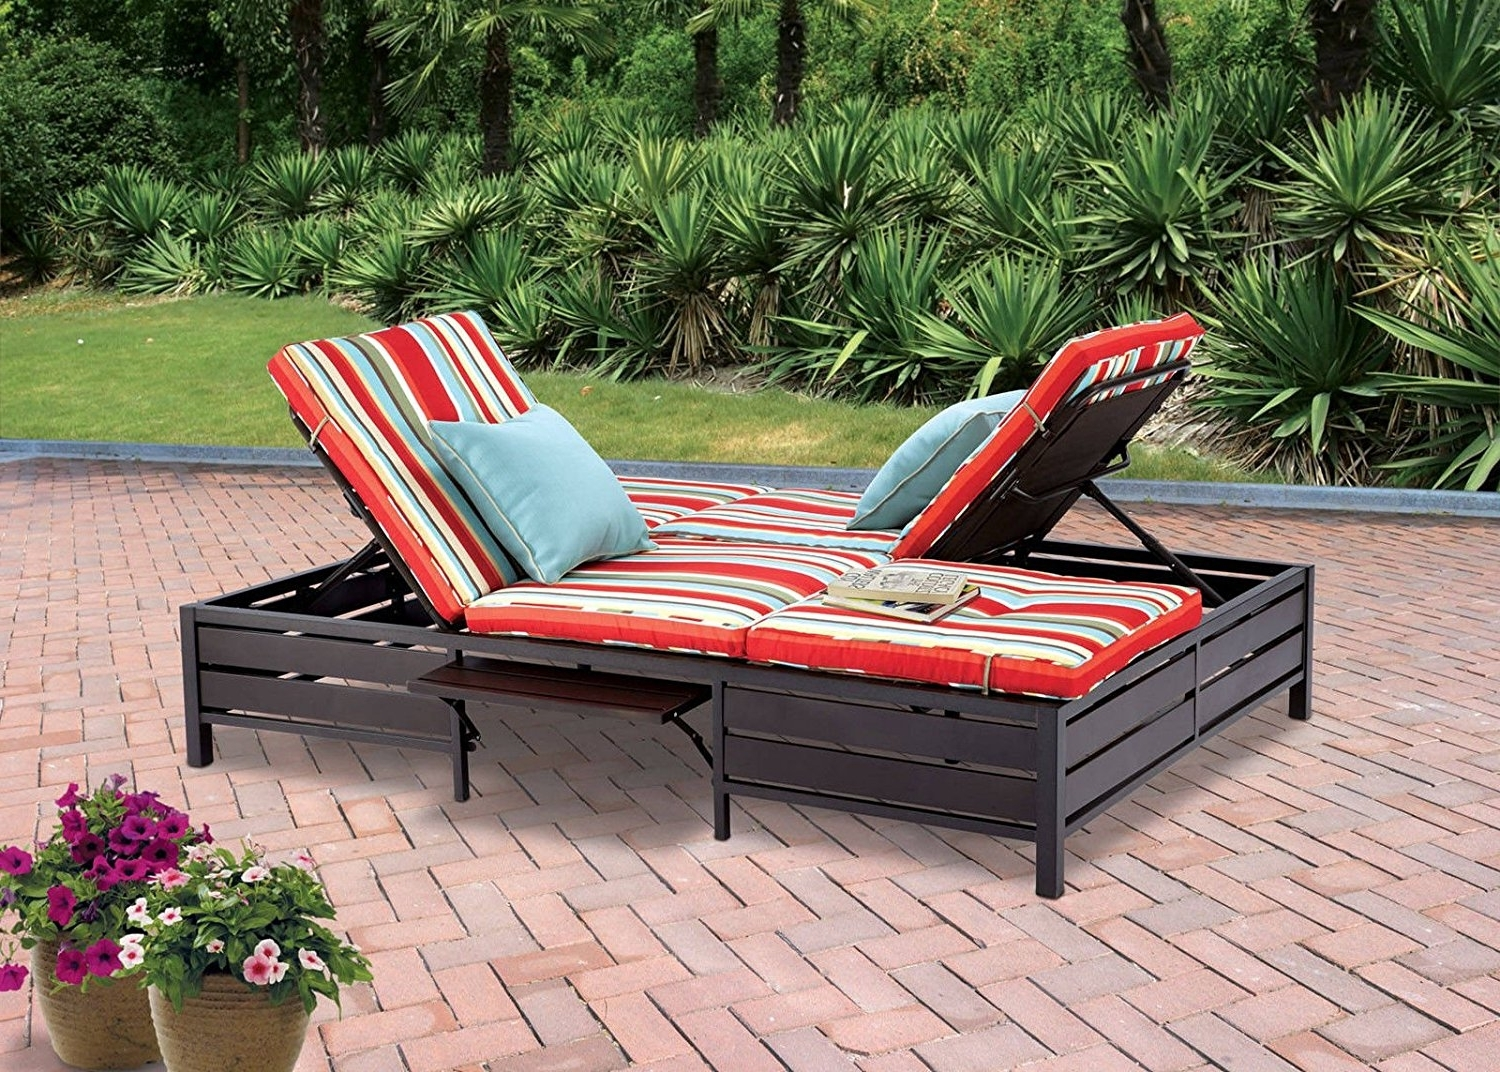 Amazon : Double Chaise Lounger – This Red Stripe Outdoor In Most Popular Outdoor Double Chaise Lounges (View 2 of 15)